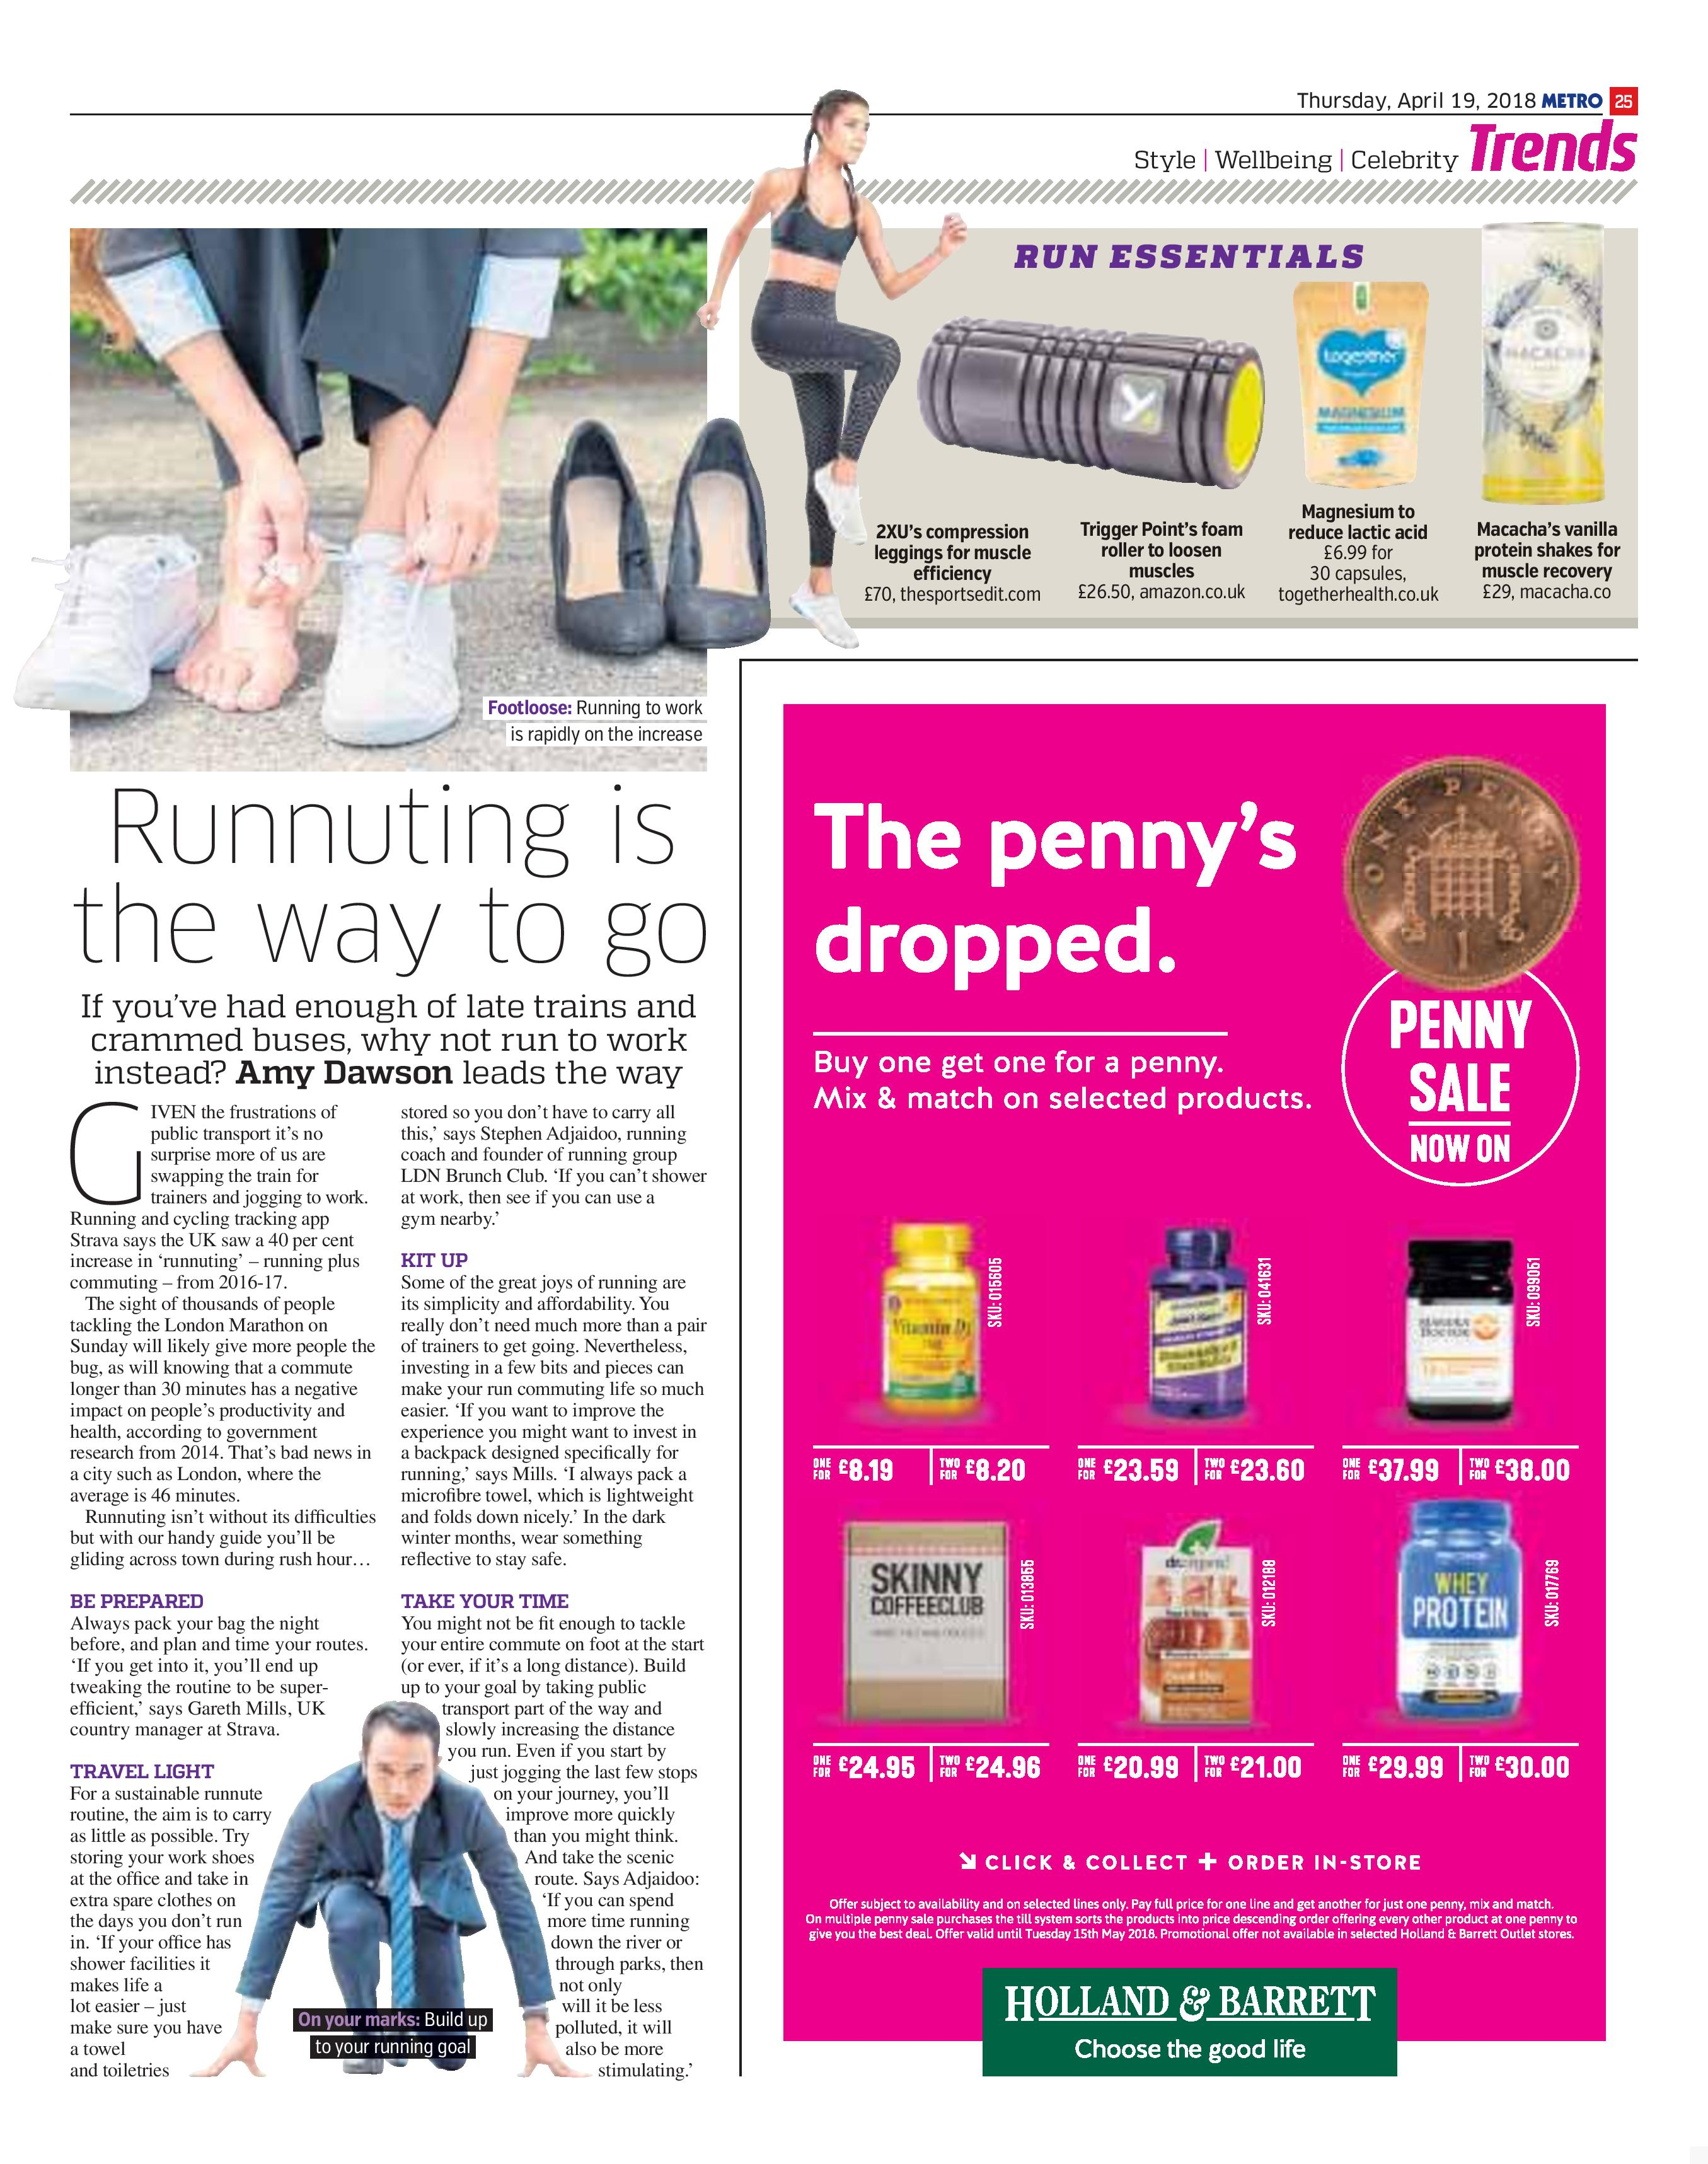 Runnuting Is The Way To Go (Metro, 19th Apr 2018)